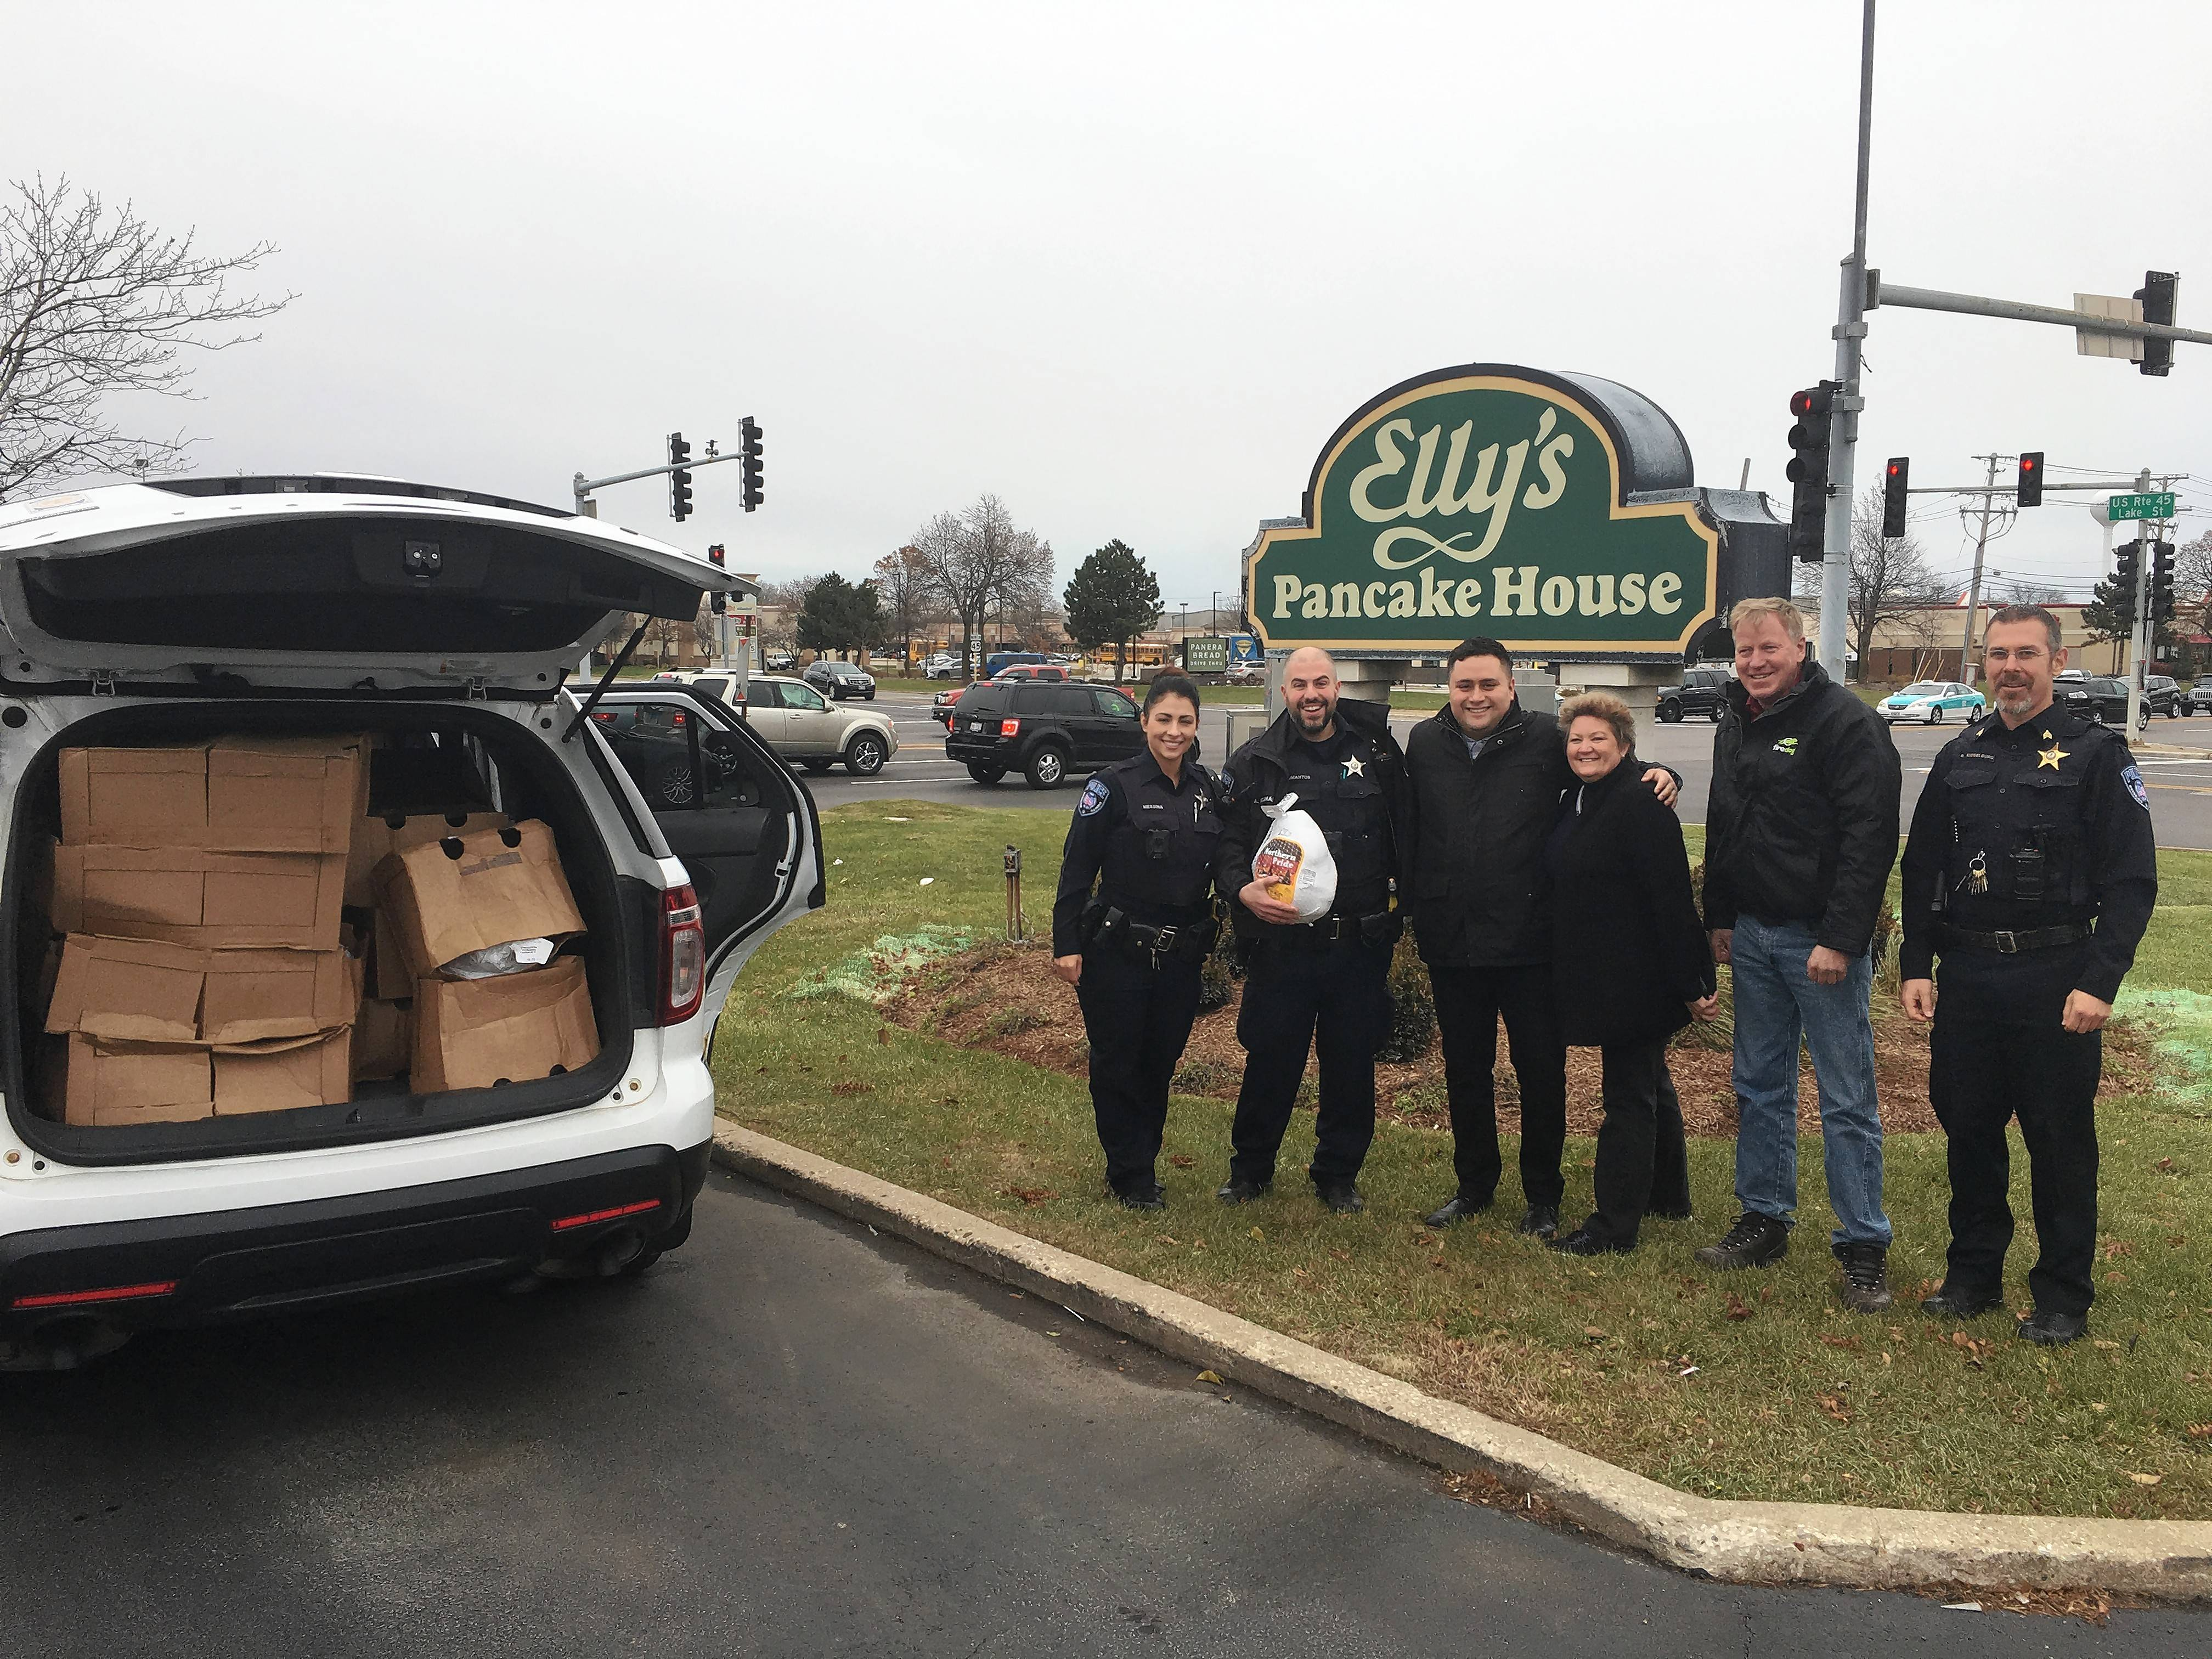 "Mundelein police teamed with Elly's Pancake House to put together Thanksgiving meals that were delivered Tuesday to 40 needy families in the community. ""It's just a great feeling to give back to the community and help those who need it,"" Mundelein Public Safety Director Eric Guenther said."